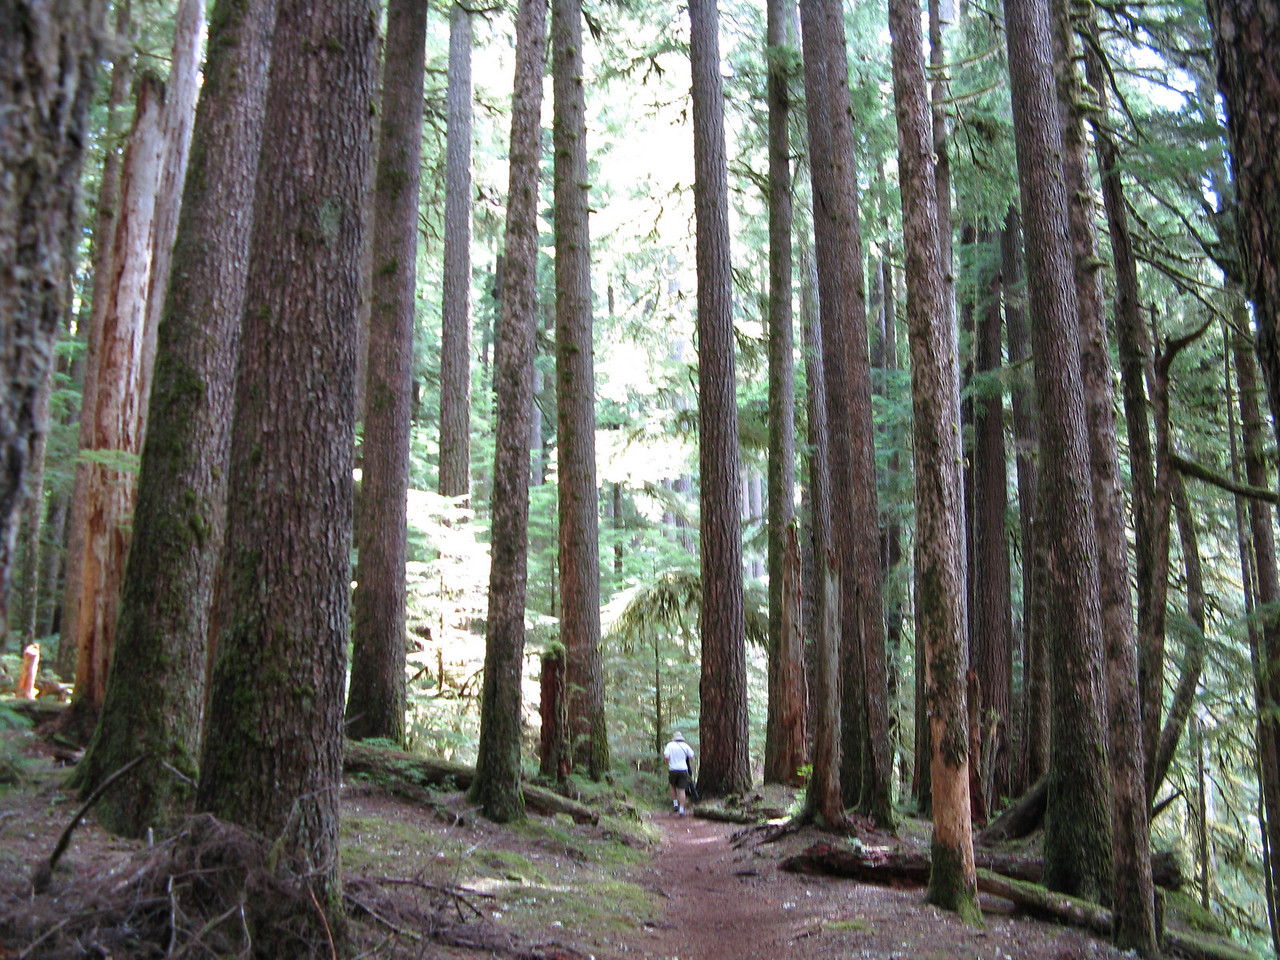 After leaving the campground, we travelled most of the rest of the way in old growth evergreen forest of fir and spruce.